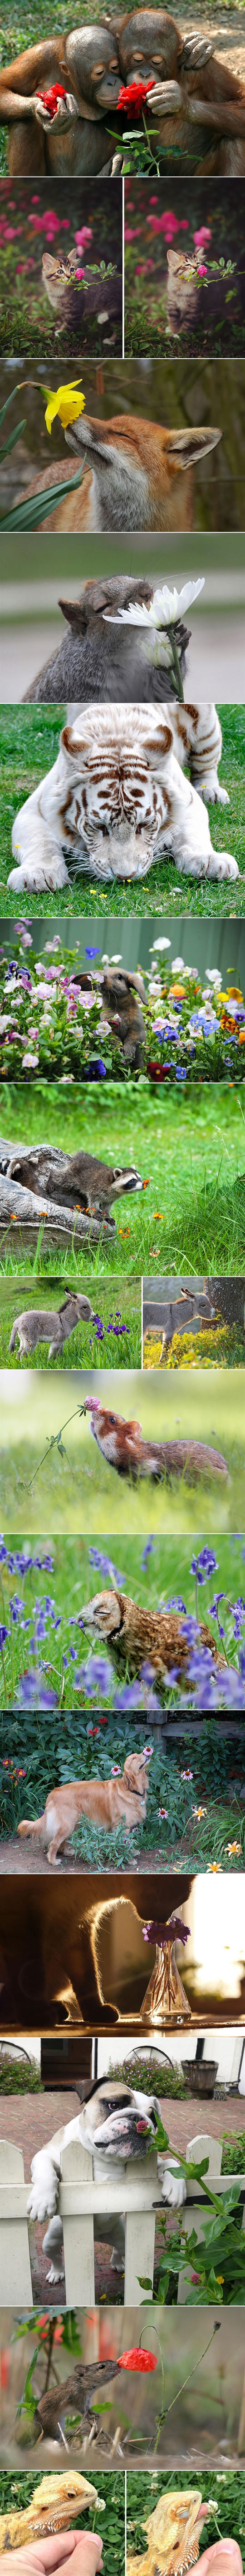 animals-smelling-flowers